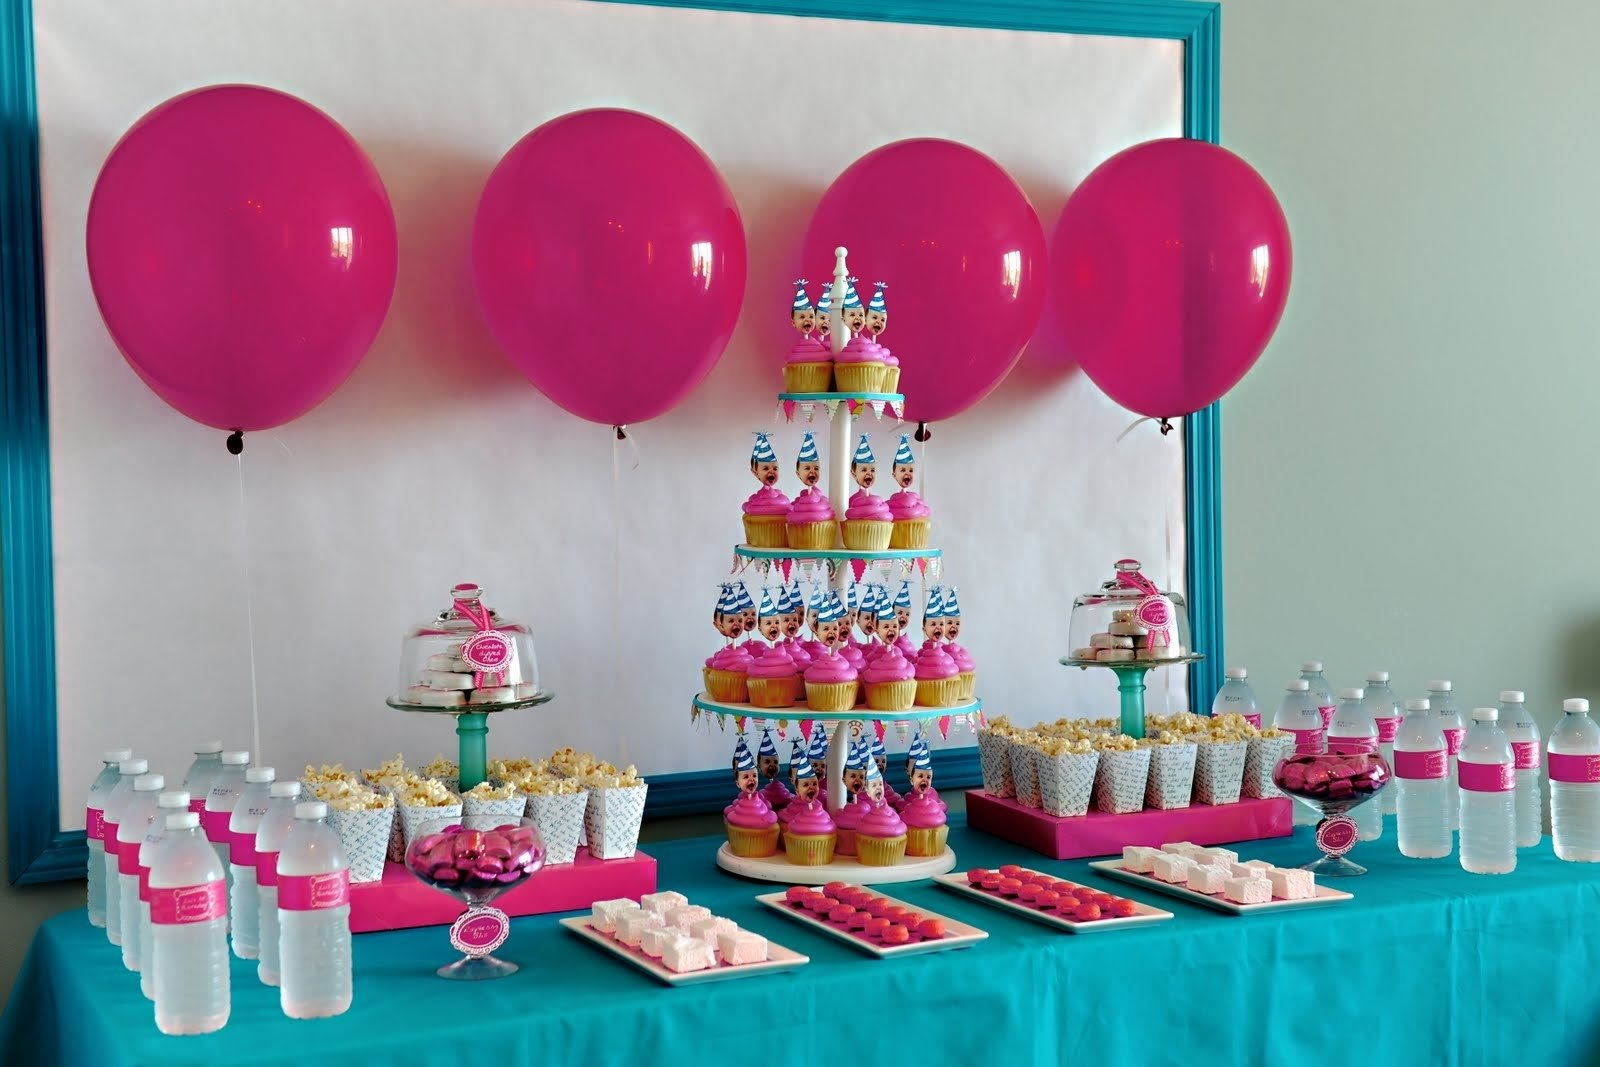 10 Stylish 4 Year Old Little Girl Birthday Party Ideas bella grace party designs real party one year old in a flash 2020